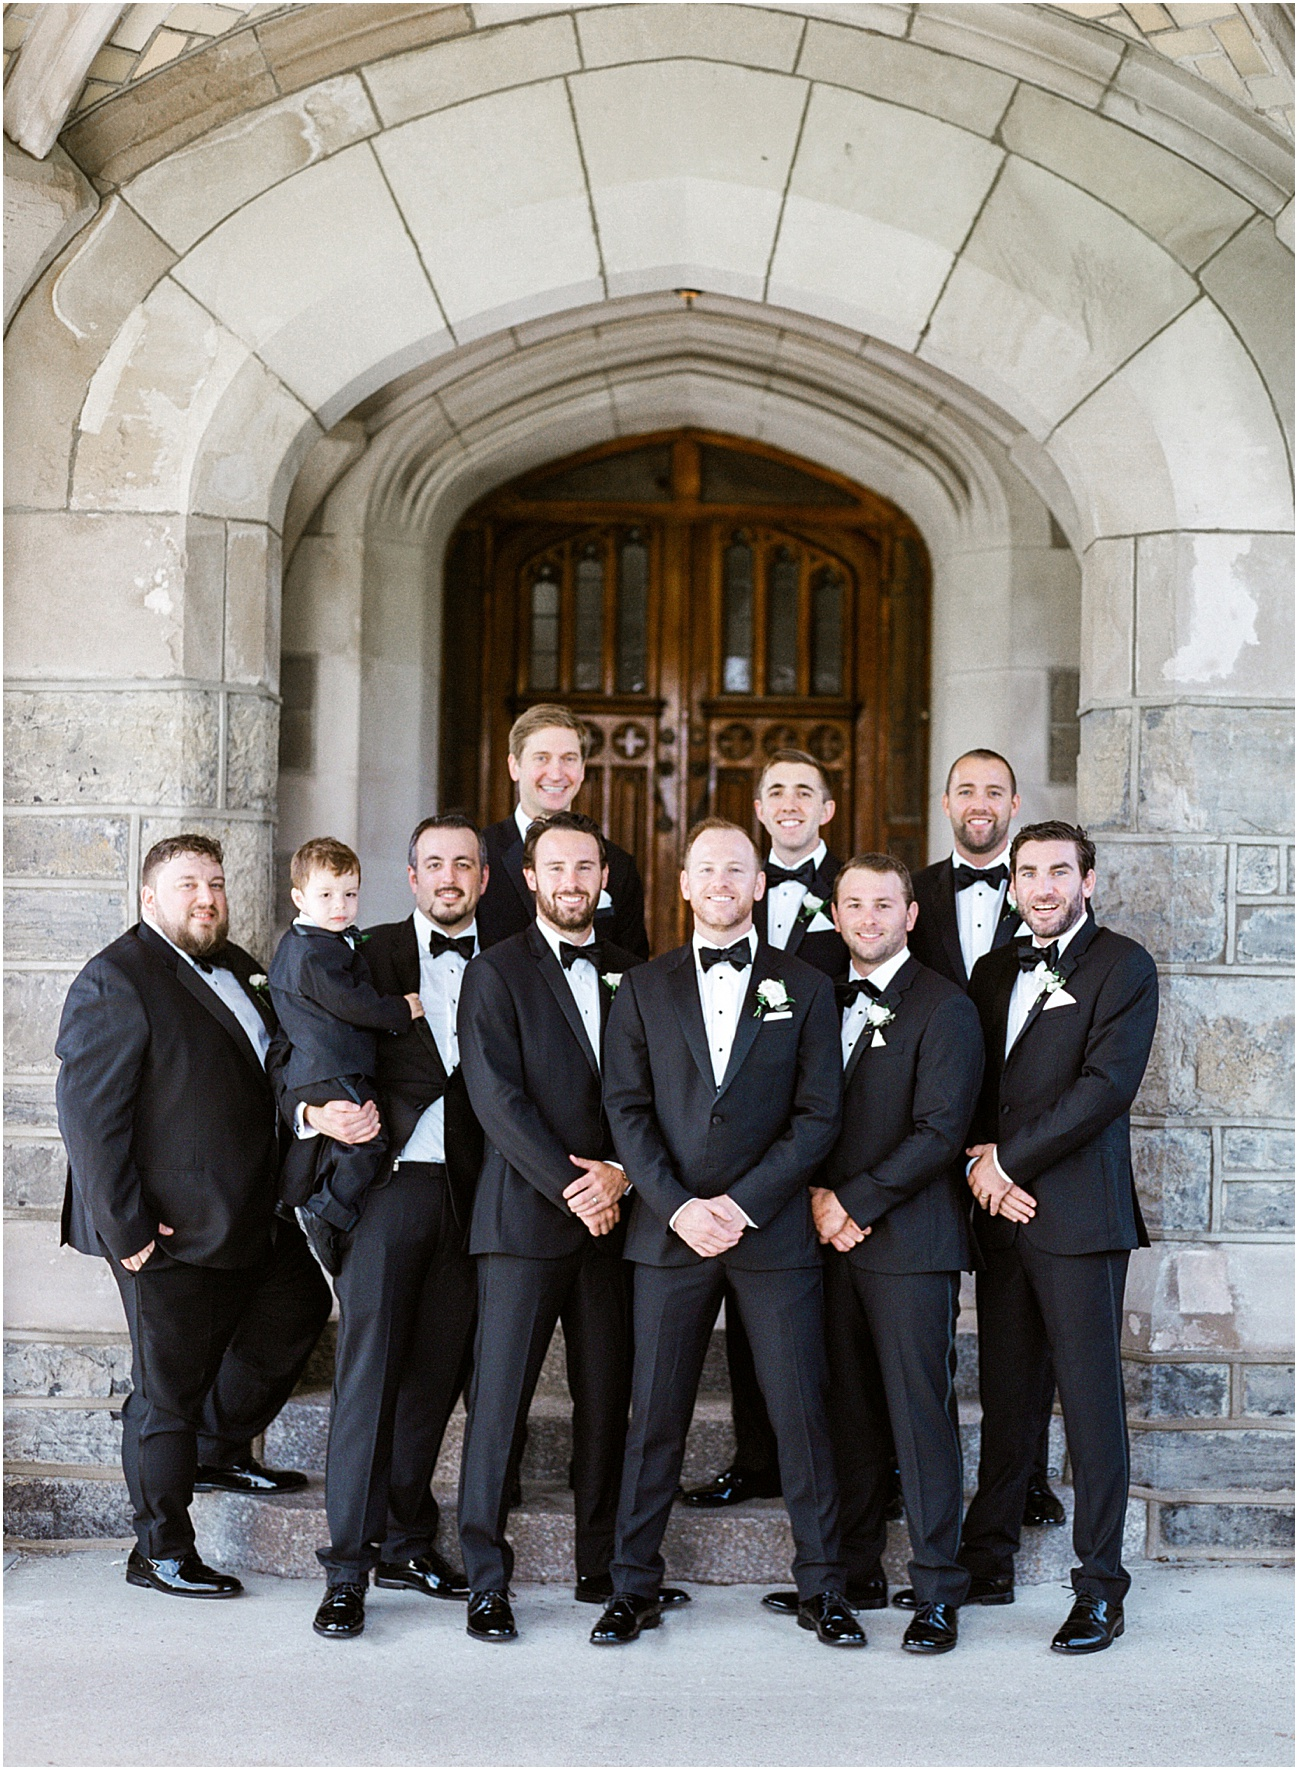 our_wedding_day_troy_NY_emma_willard_fairy_tale_royal_neutral_beauty_and_the_beast_moped_private_estate_cape_cod_boston_wedding_photographer_meredith_jane_photography_chris_kerr_photo_1969.jpg